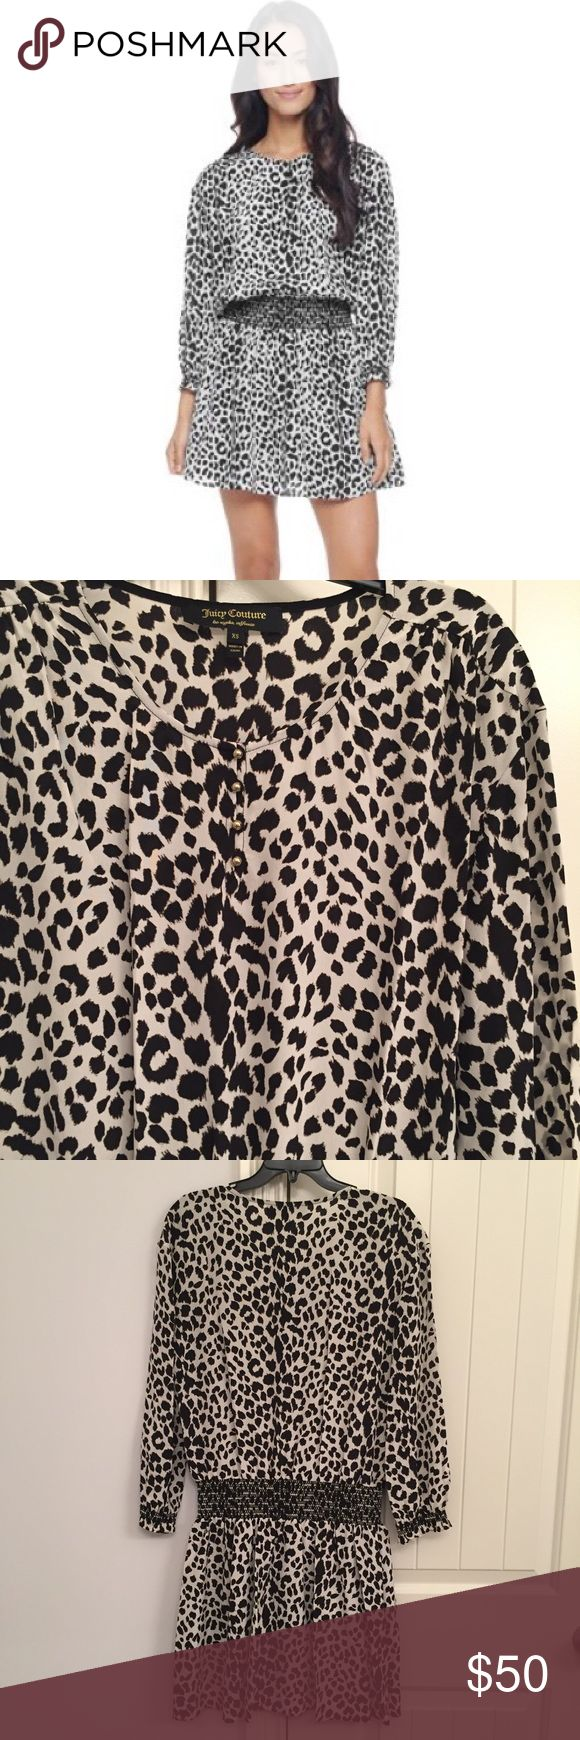 Leopard cheetah animal print dress XS Like new dress! Worn once and retailed for $128! Super cute and flattering! I'm also a 5 Star Seller and ship next day! 💖 Juicy Couture Dresses